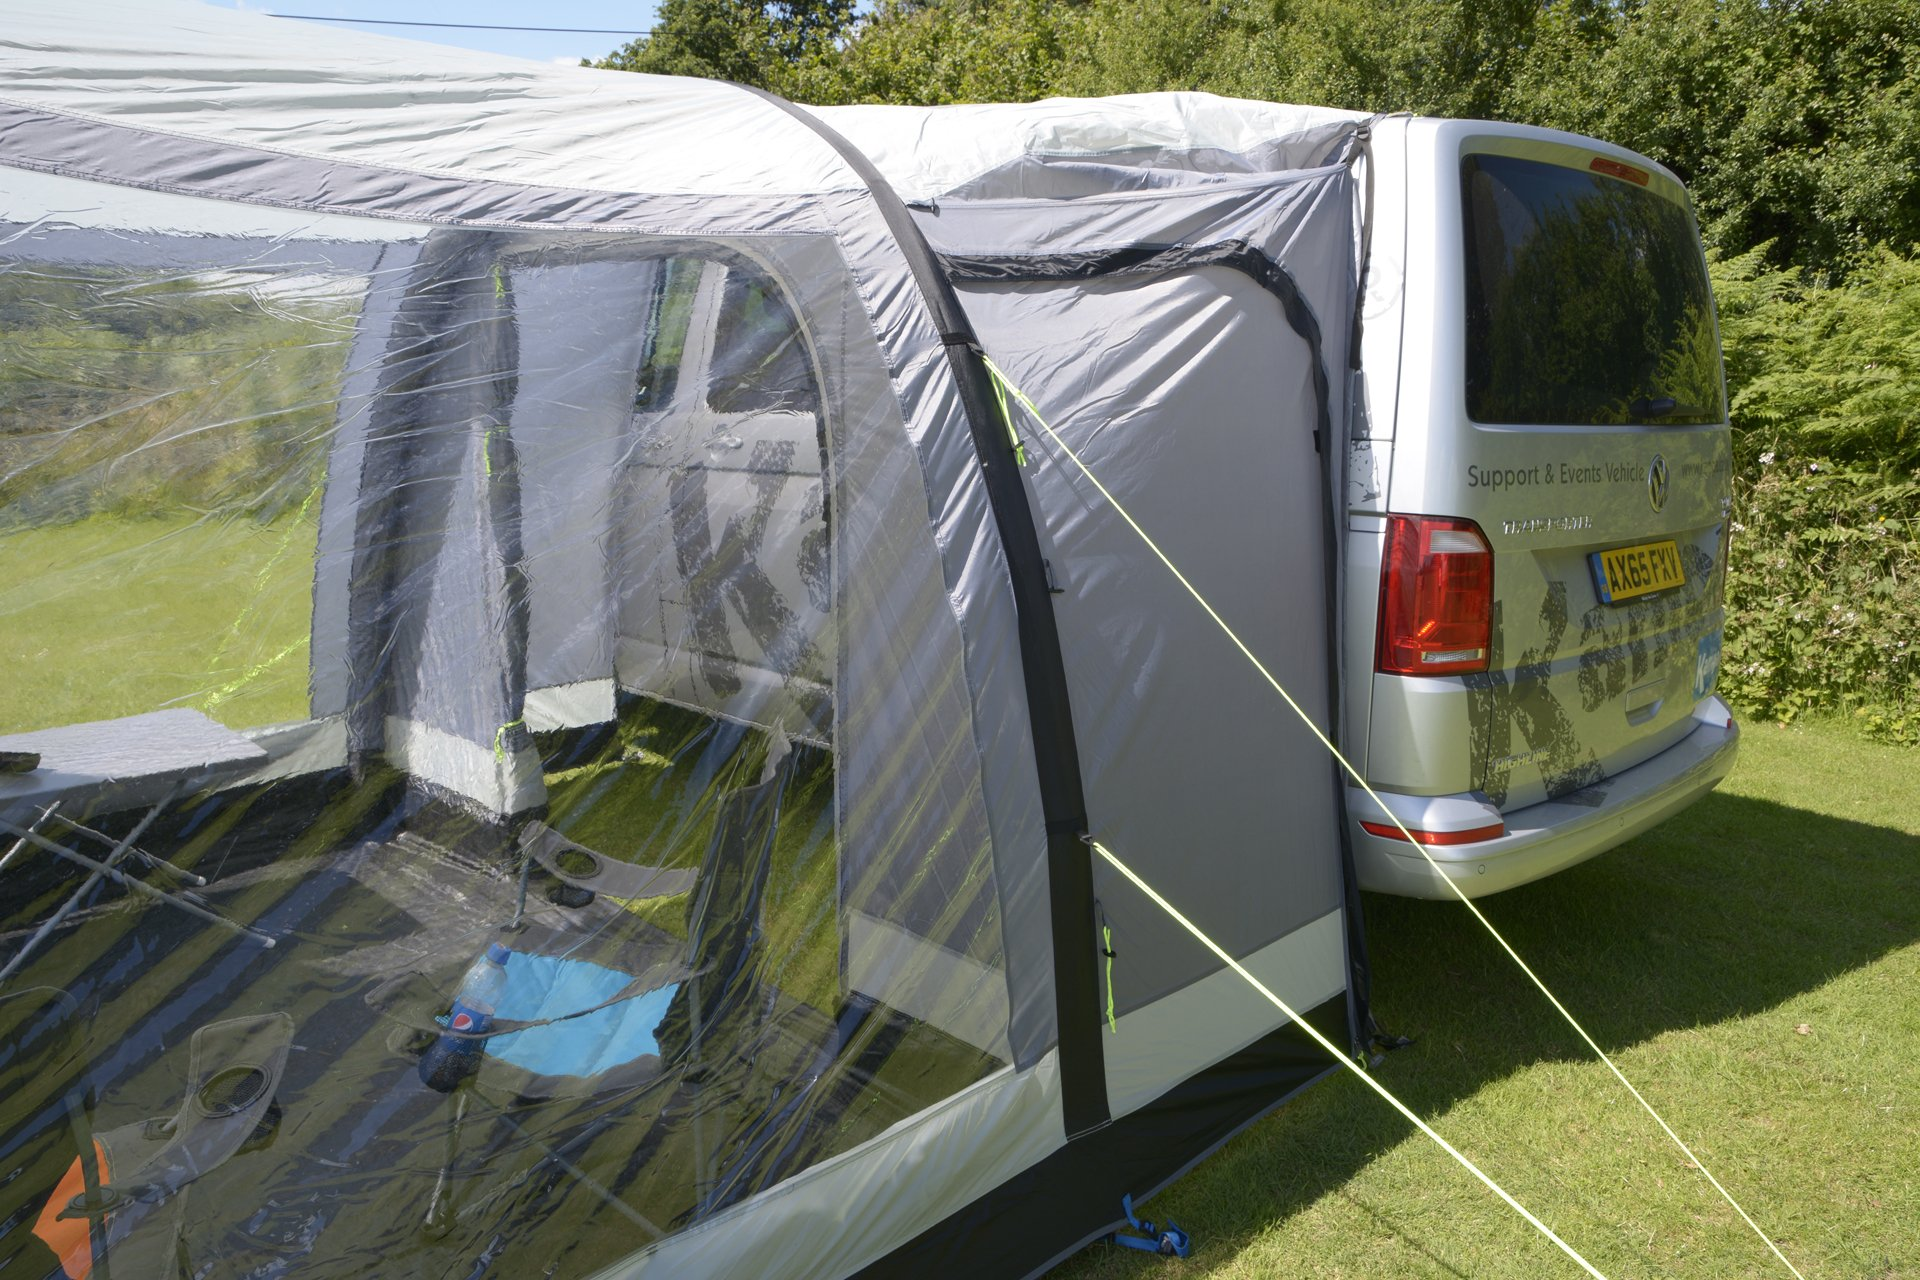 Kampa Travel Pod Action AIR VW Driveaway Awning lin with car